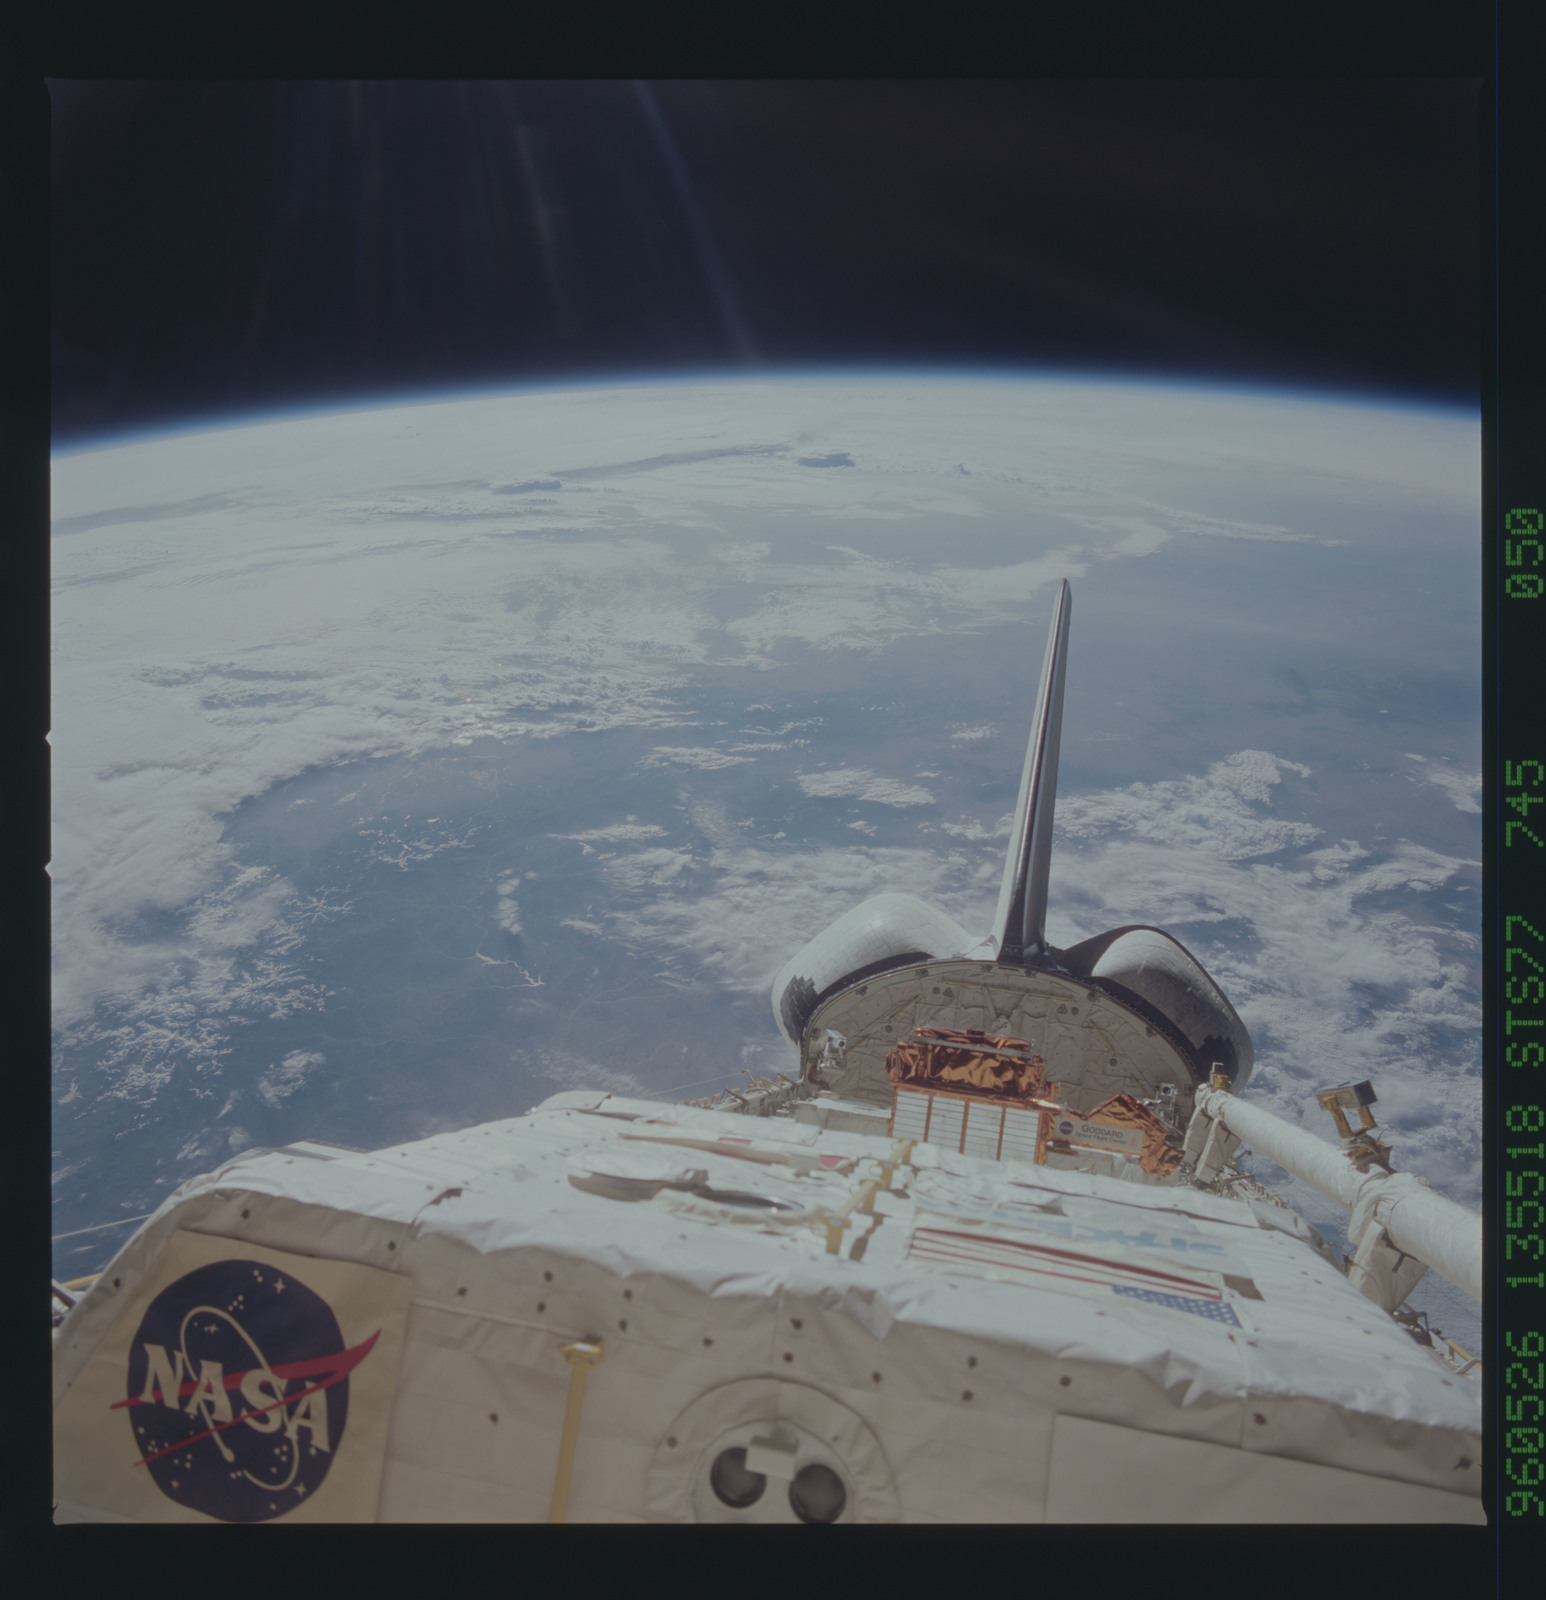 STS077-745-050 - STS-077 - View of the Endeavour's payload bay